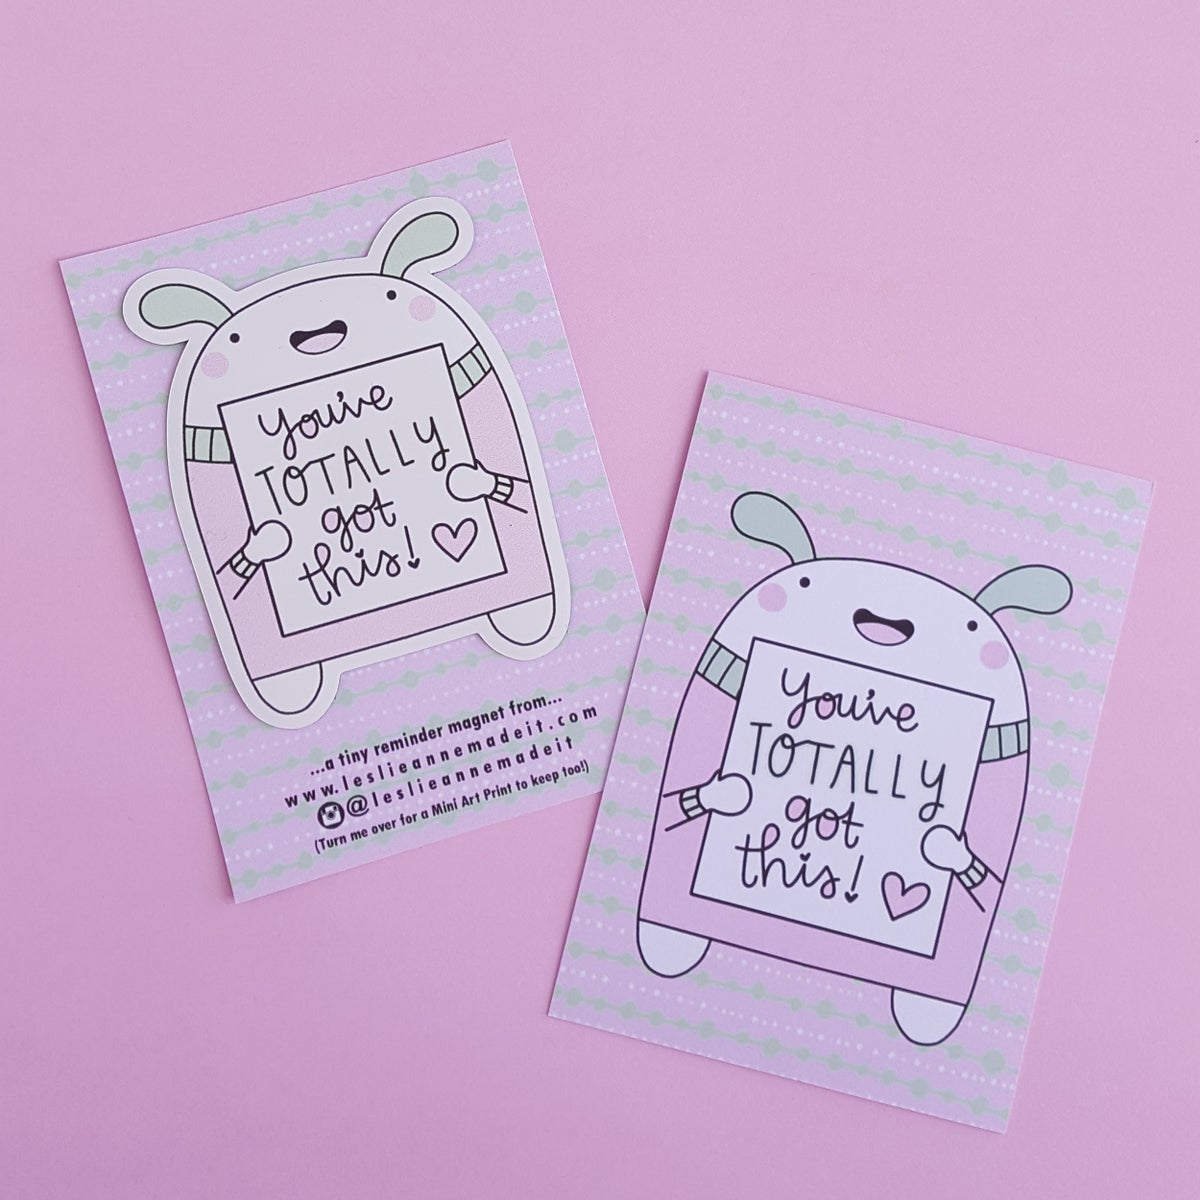 You've Totally Got This : Fridge Magnet (Plus FREE Art Print!)